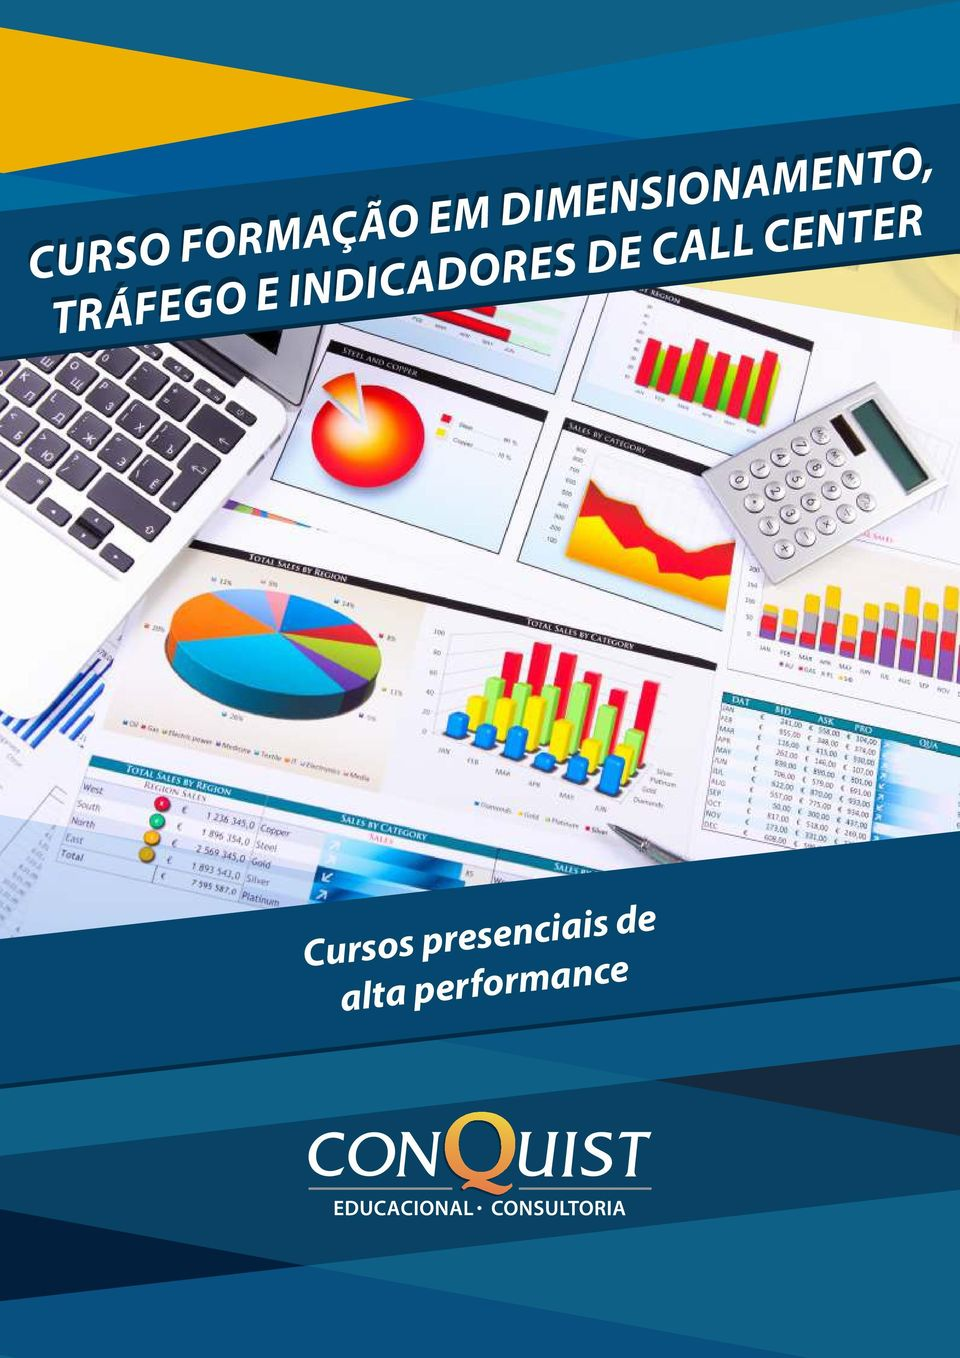 INDICADORES DE CALL CENTER